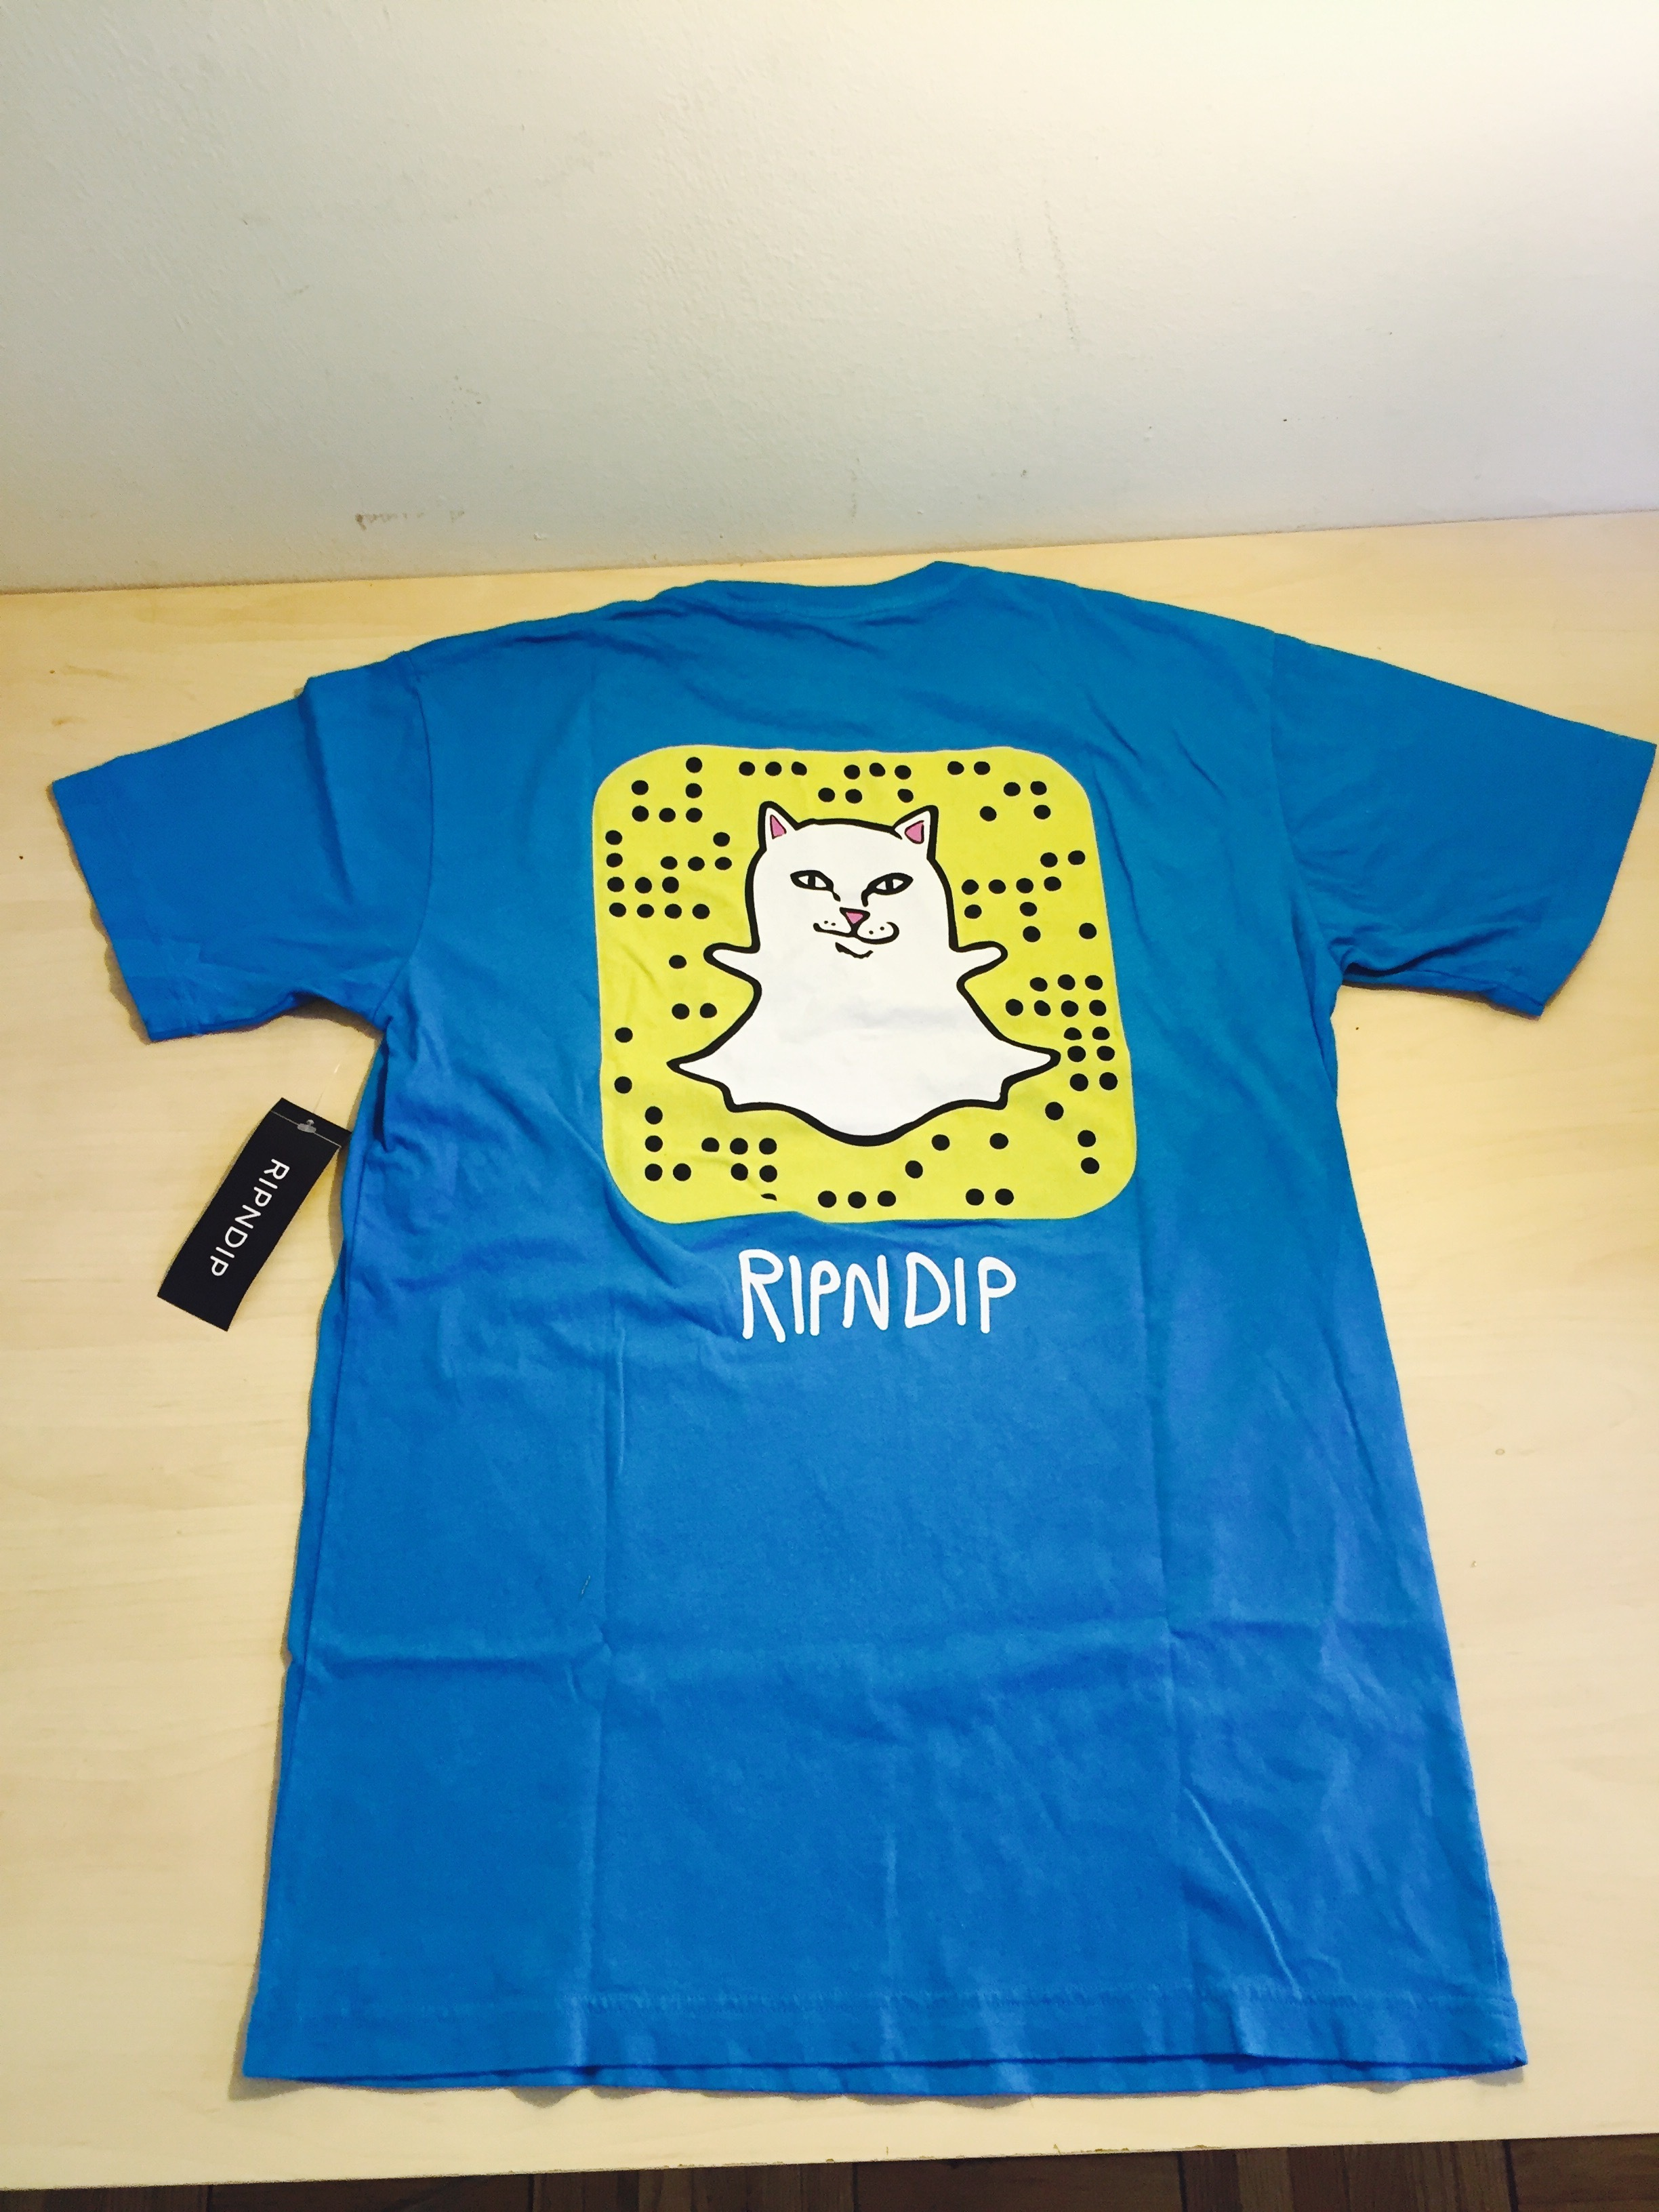 【RIPNDIP】☆LA FLAG SHOP限定☆超入手困難☆MUST BE NICE TEE